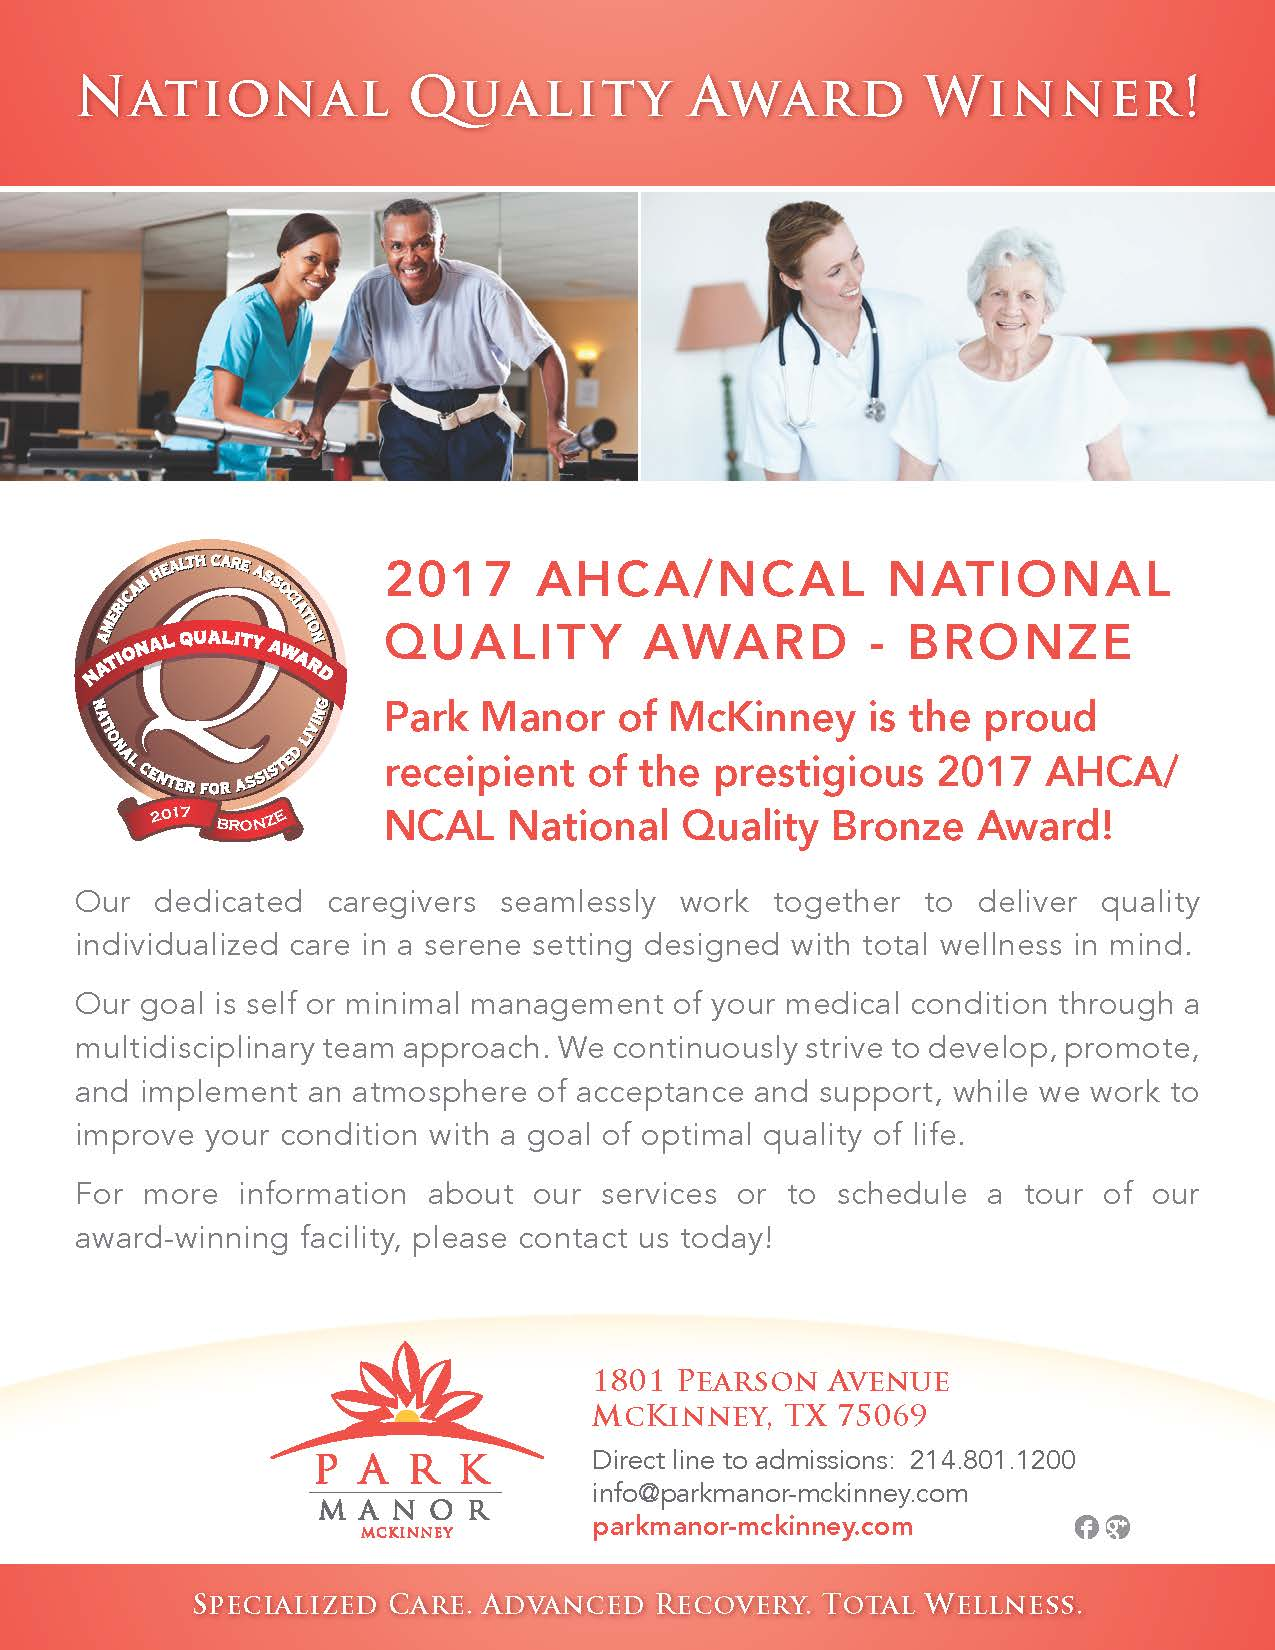 Park Manor McKinney Earns The 2017 AHCA NCAL National Quality Award